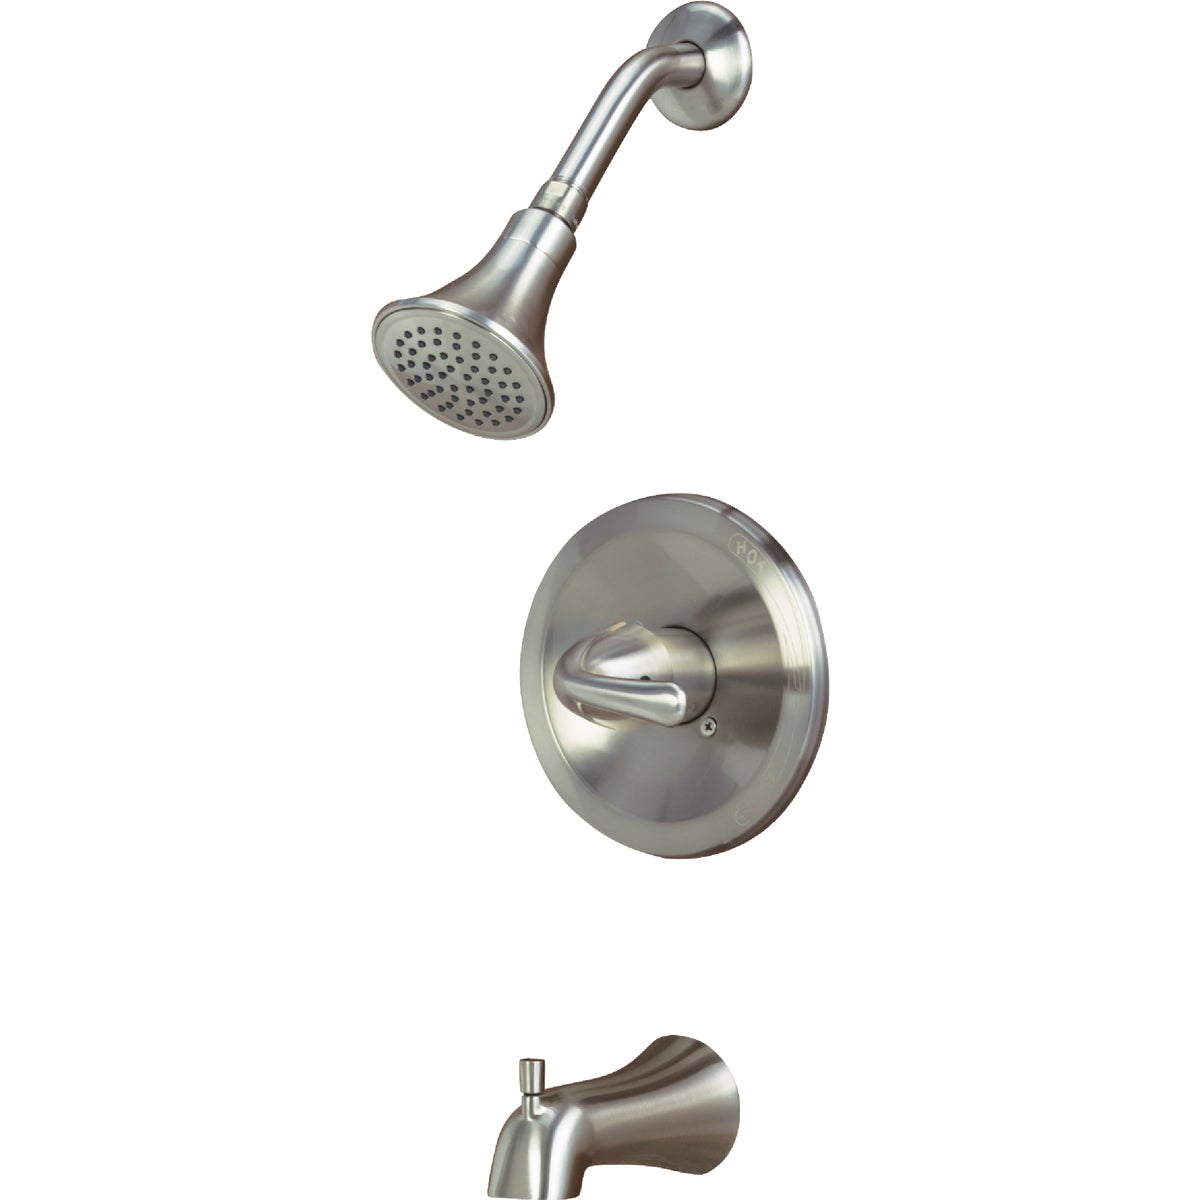 BN TUB/SHOWER FAUCET - F1A14507NP-JPA3 by Globe Union